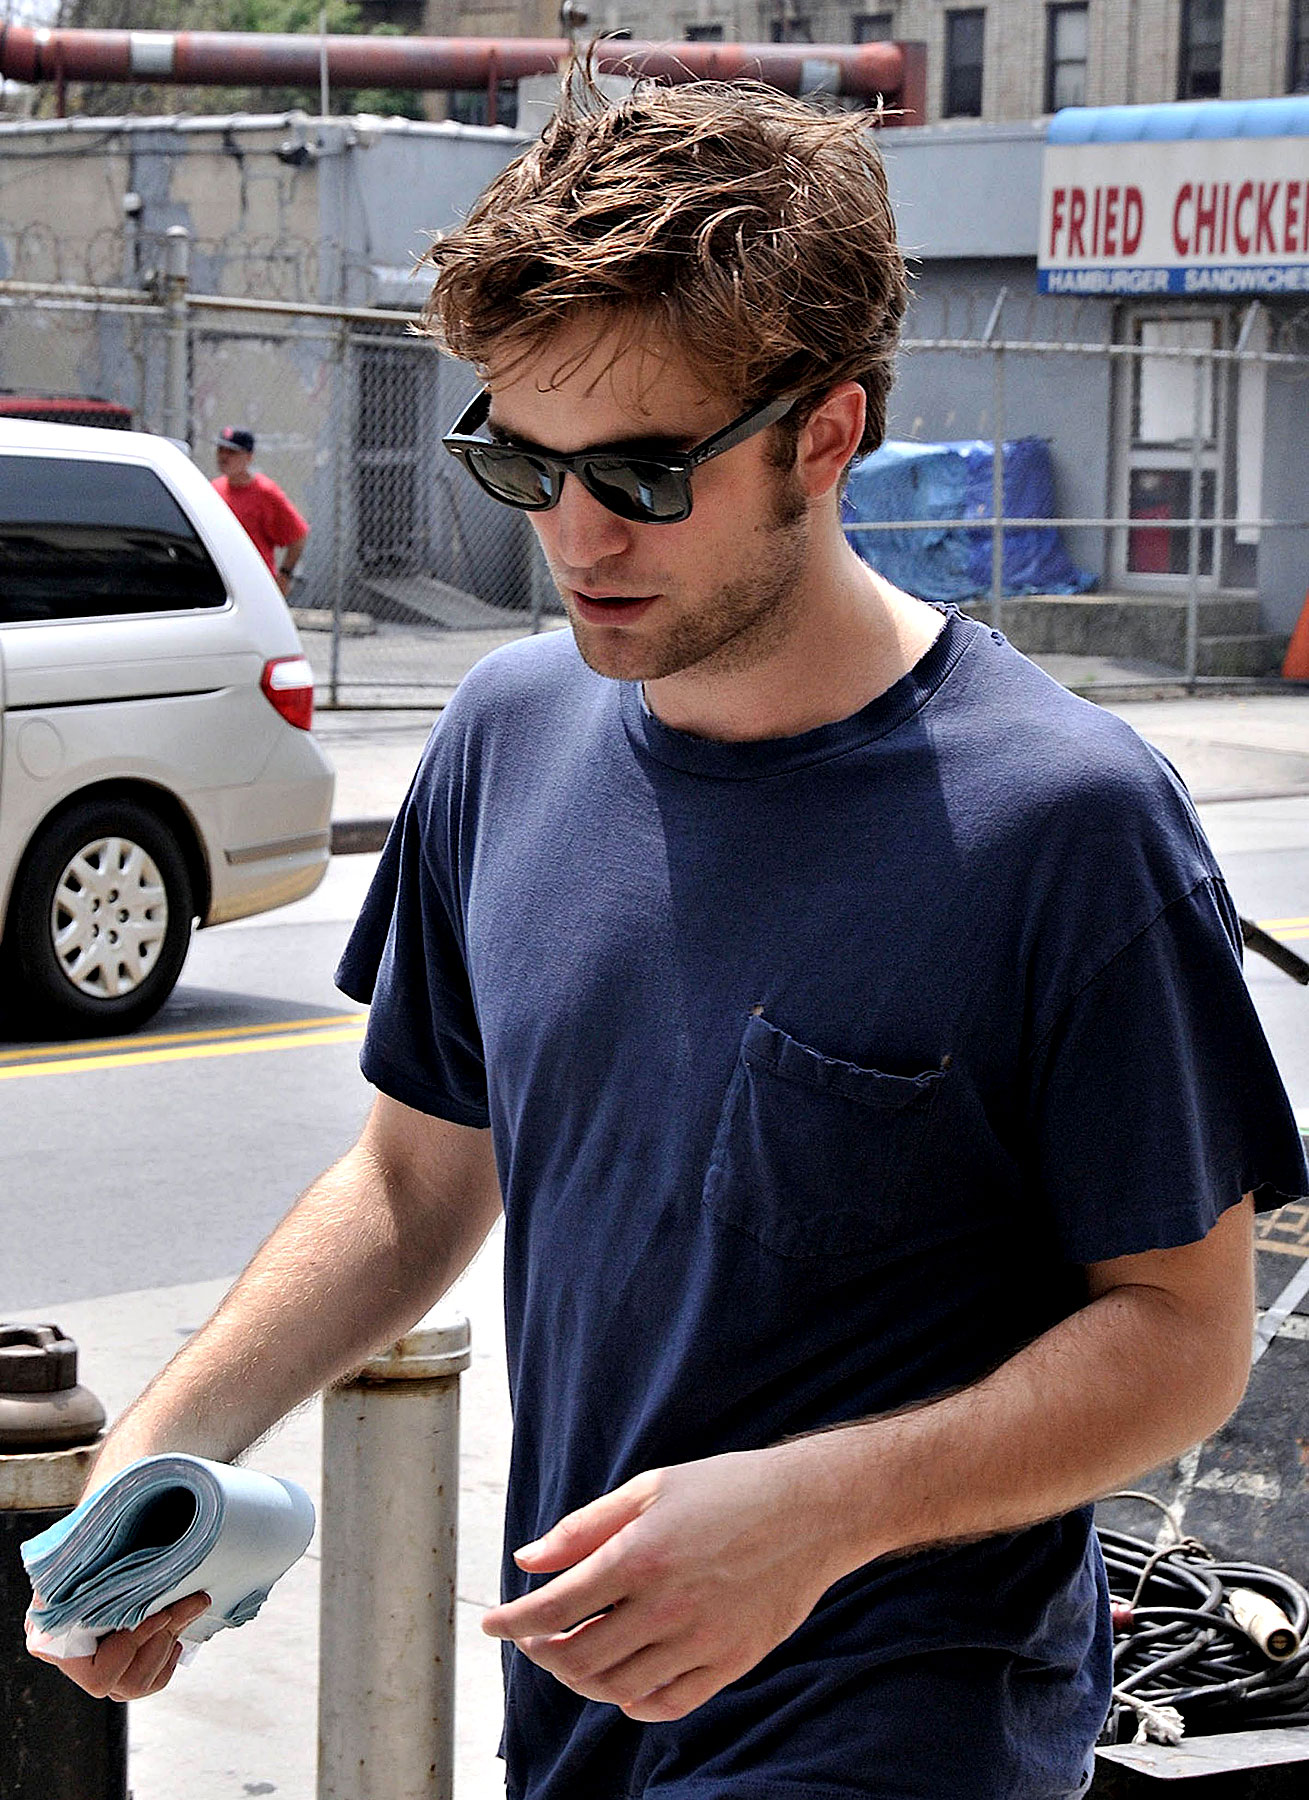 PHOTO GALLERY: Robert Pattinson Gets Scruffed Up on 'Remember Me' Set